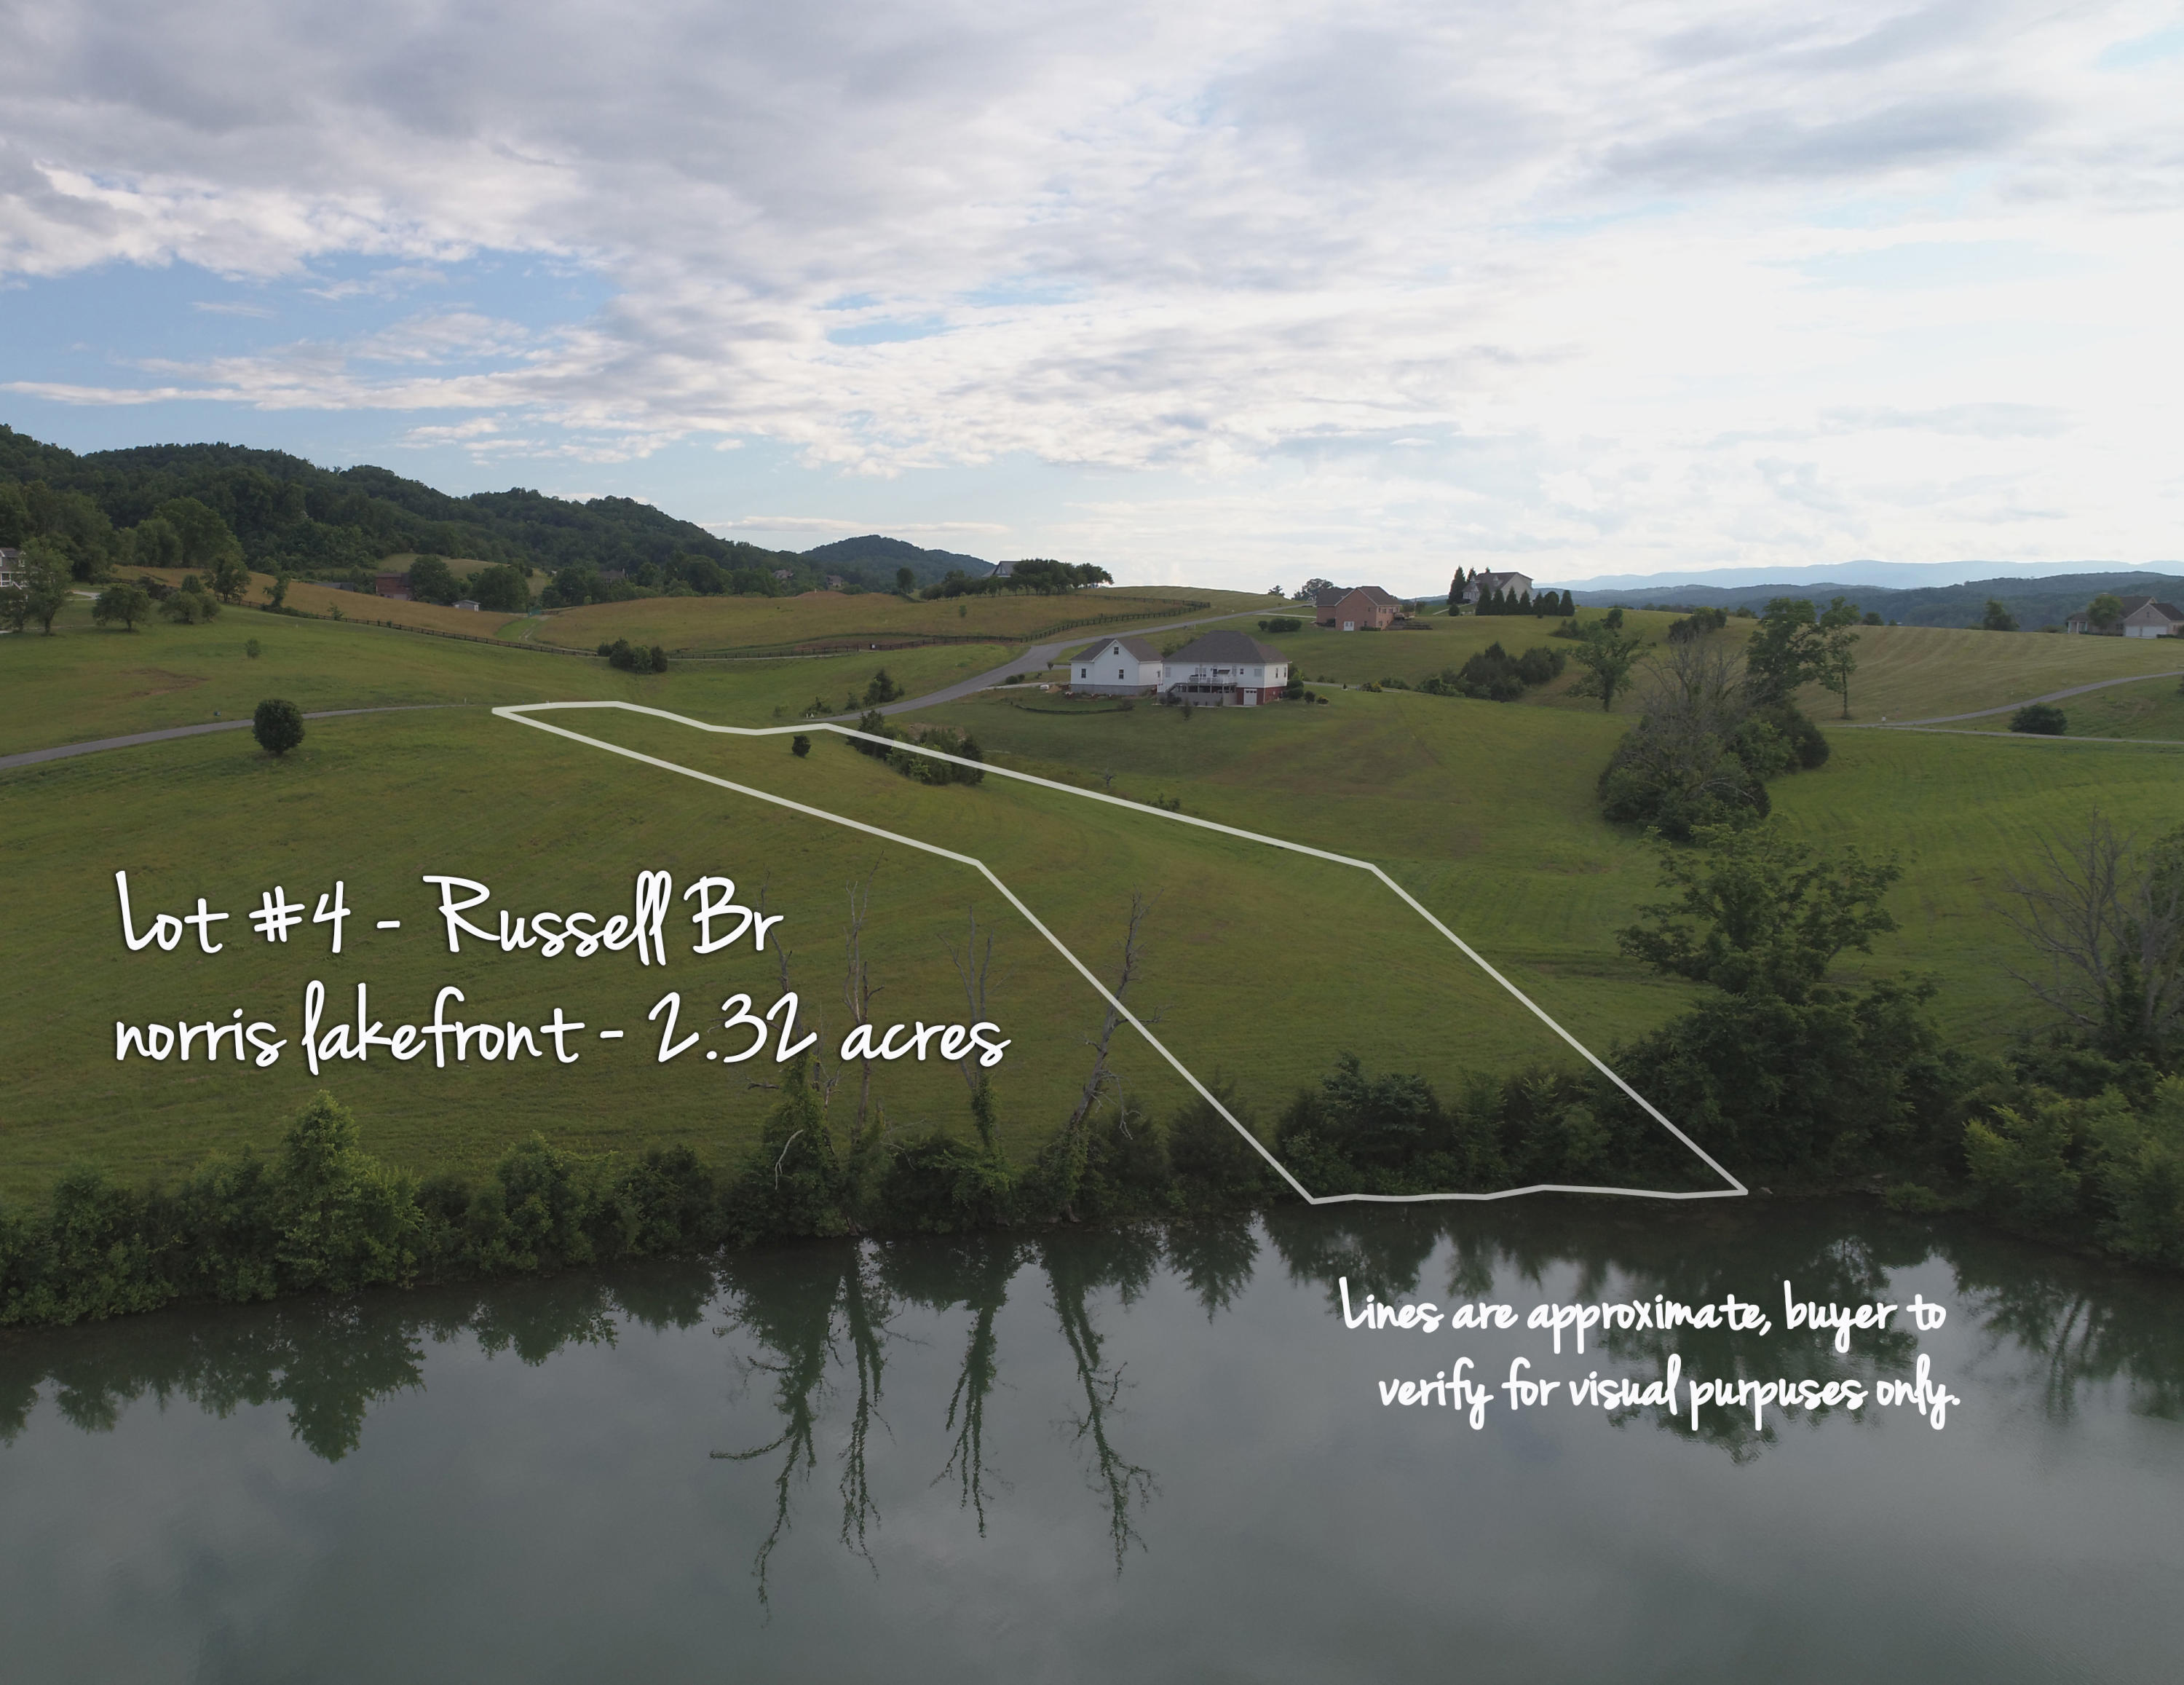 Lot 4 Russell Brothers Rd: